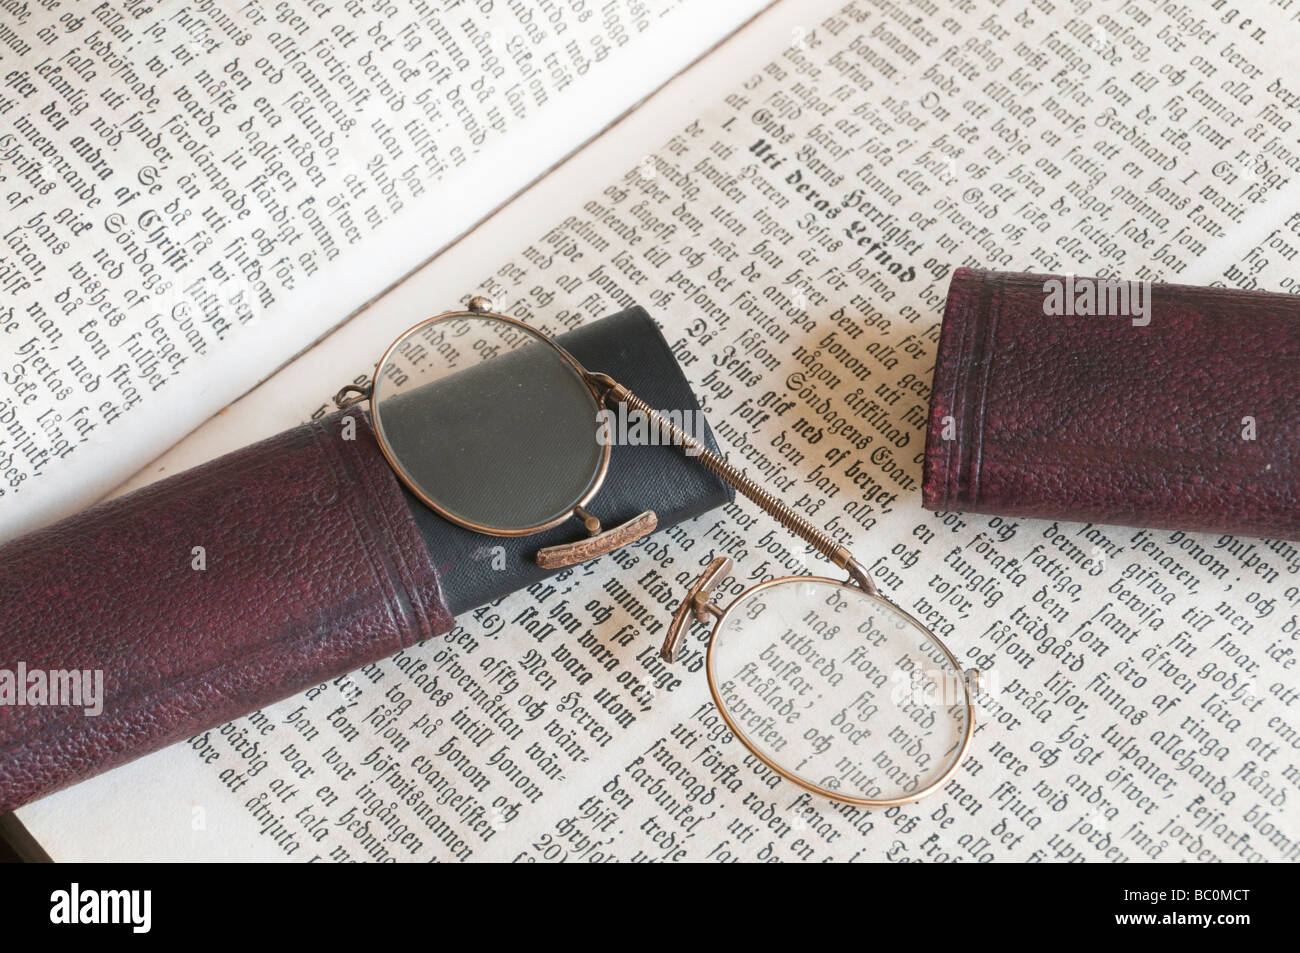 A pair of old pince-nez eye-glasses with case on old Swedish bible. Stock Photo